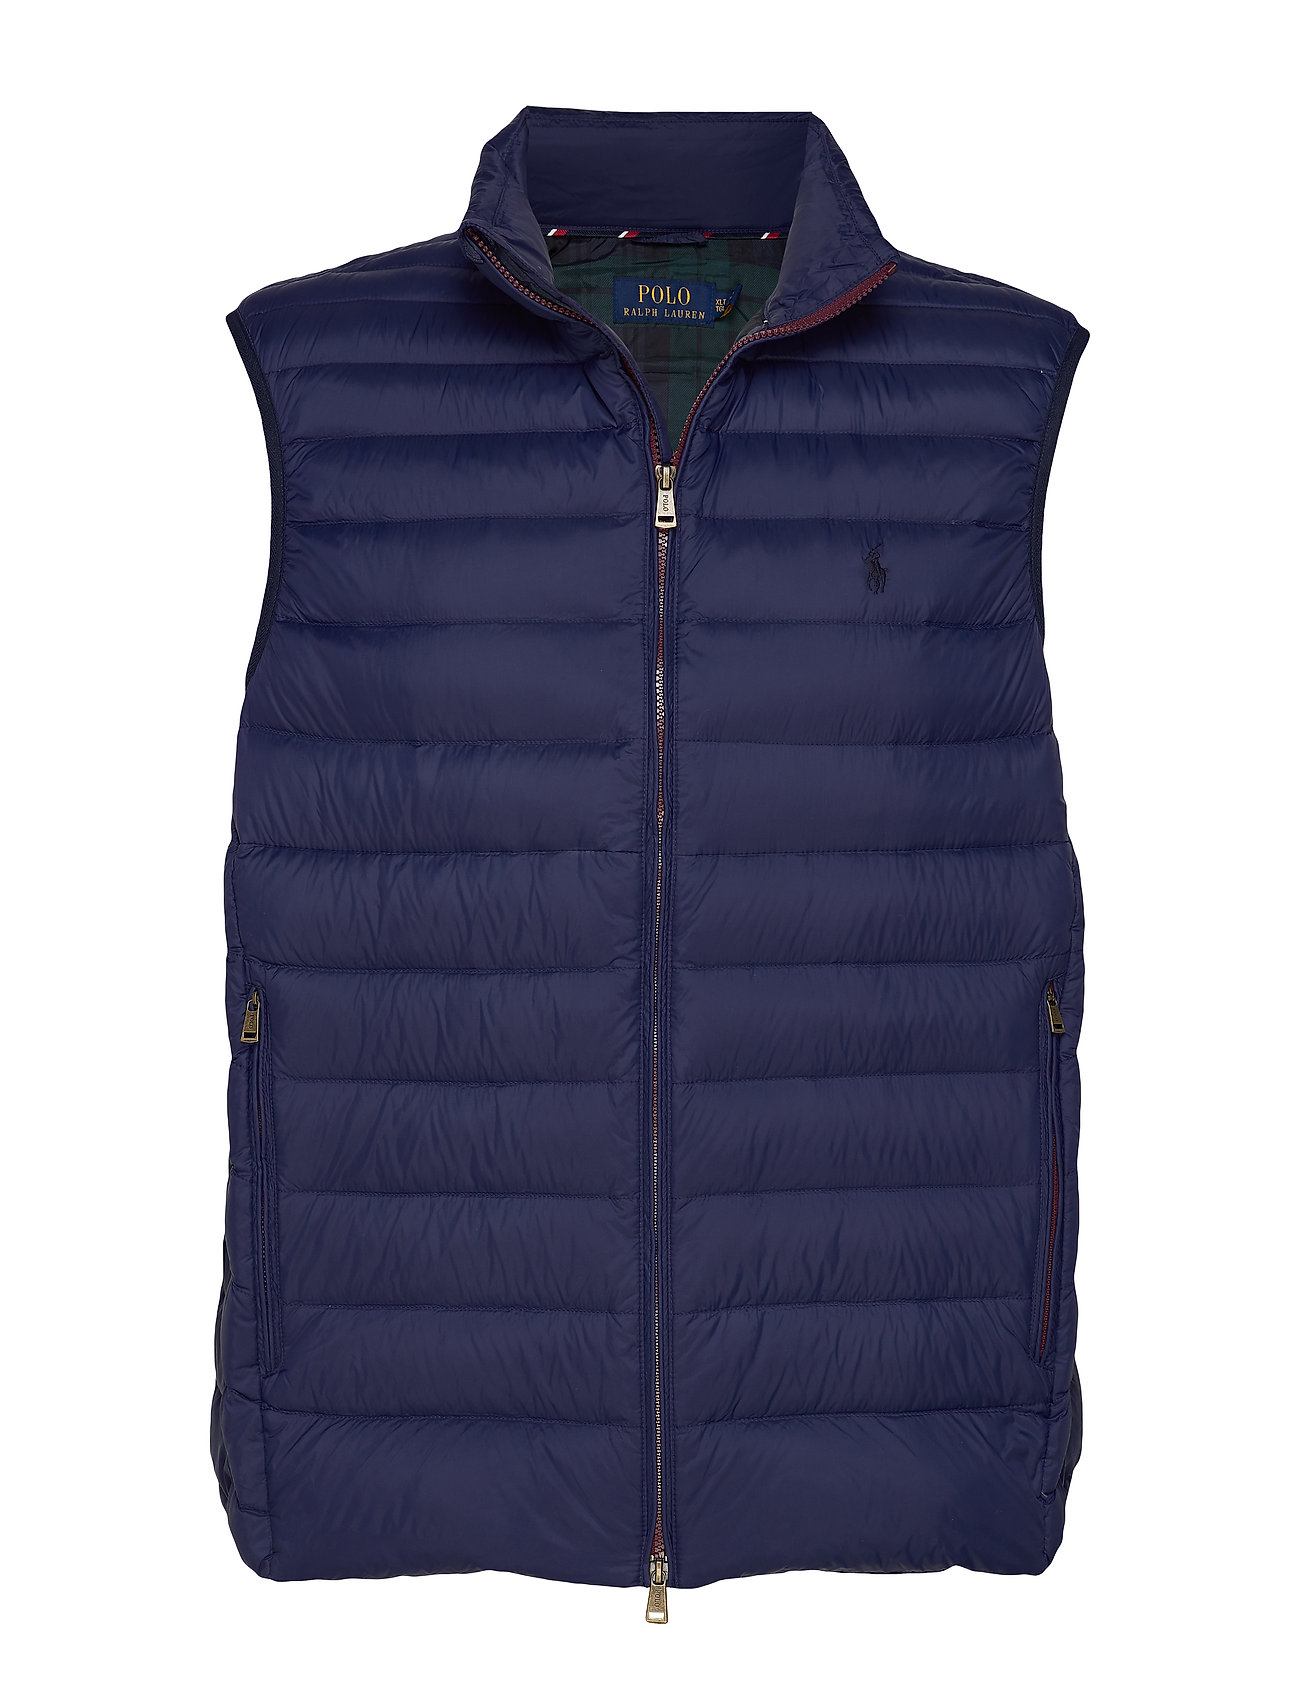 Polo Ralph Lauren Big & Tall Packable Down Vest - CRUISE NAVY